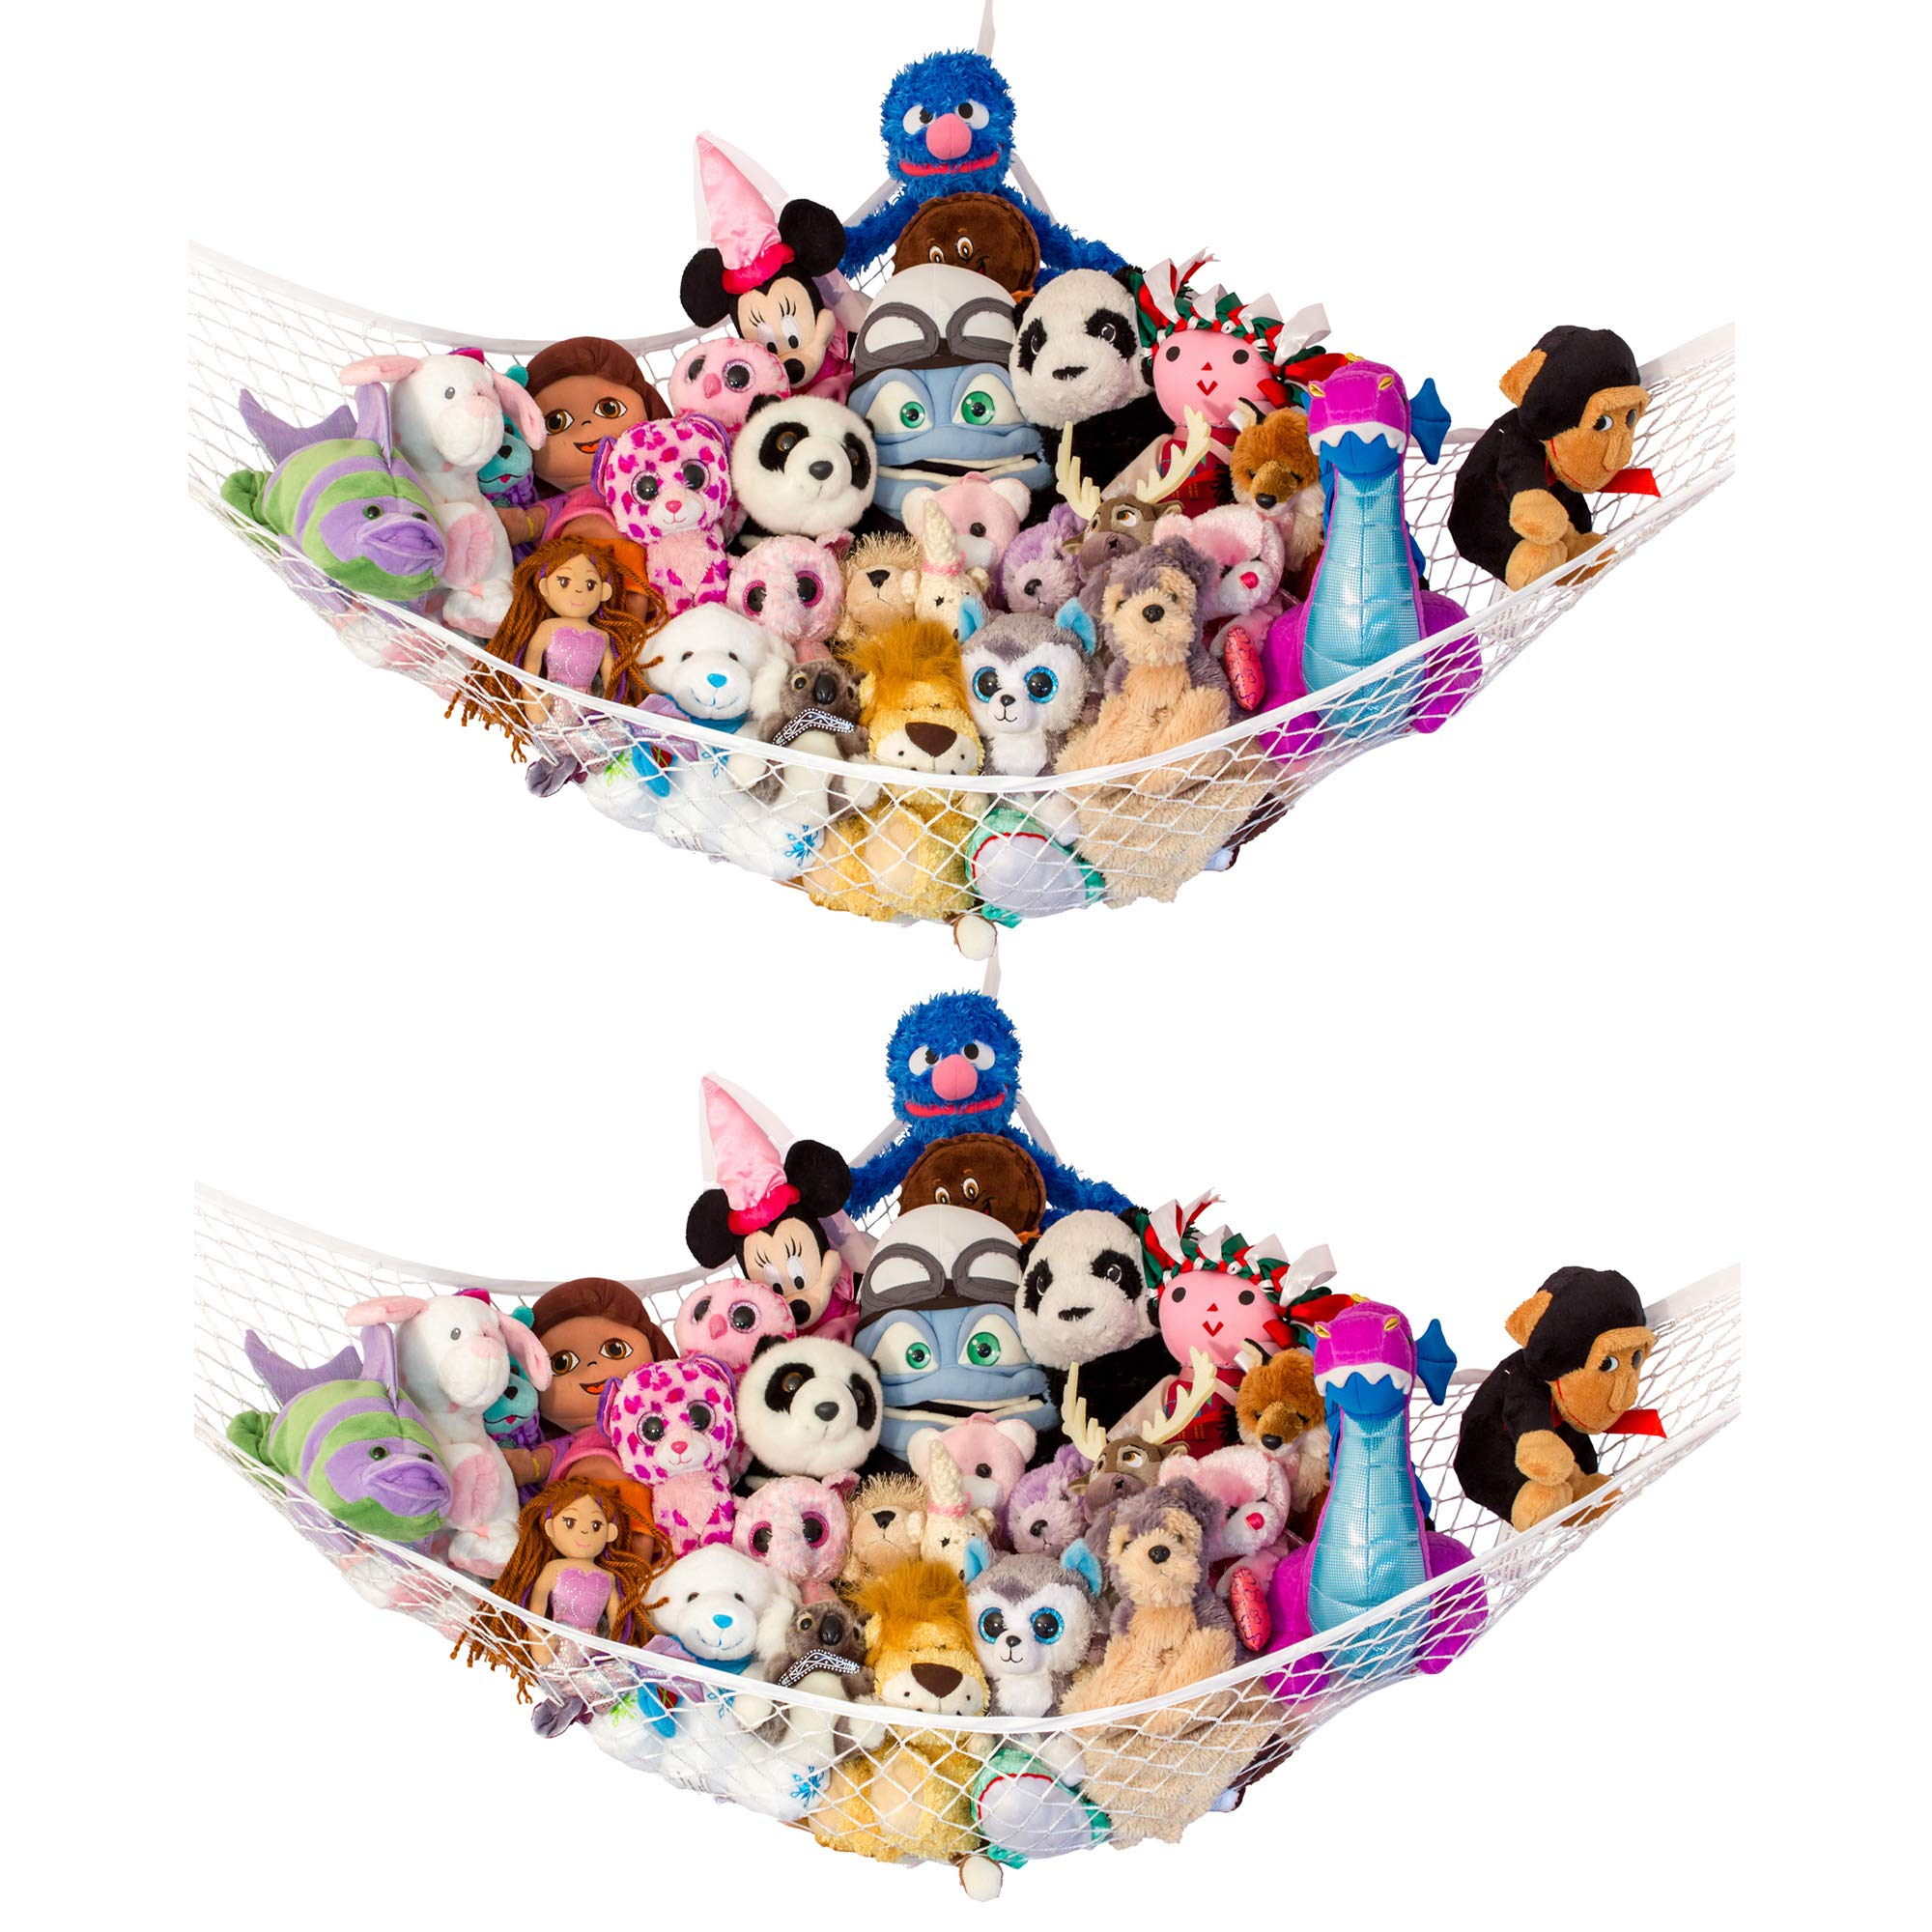 Lilly's Love Stuffed Animal Storage Hammock - Large Pack 2 -''STUFFIE Party Hammock'' by Lilly's Love